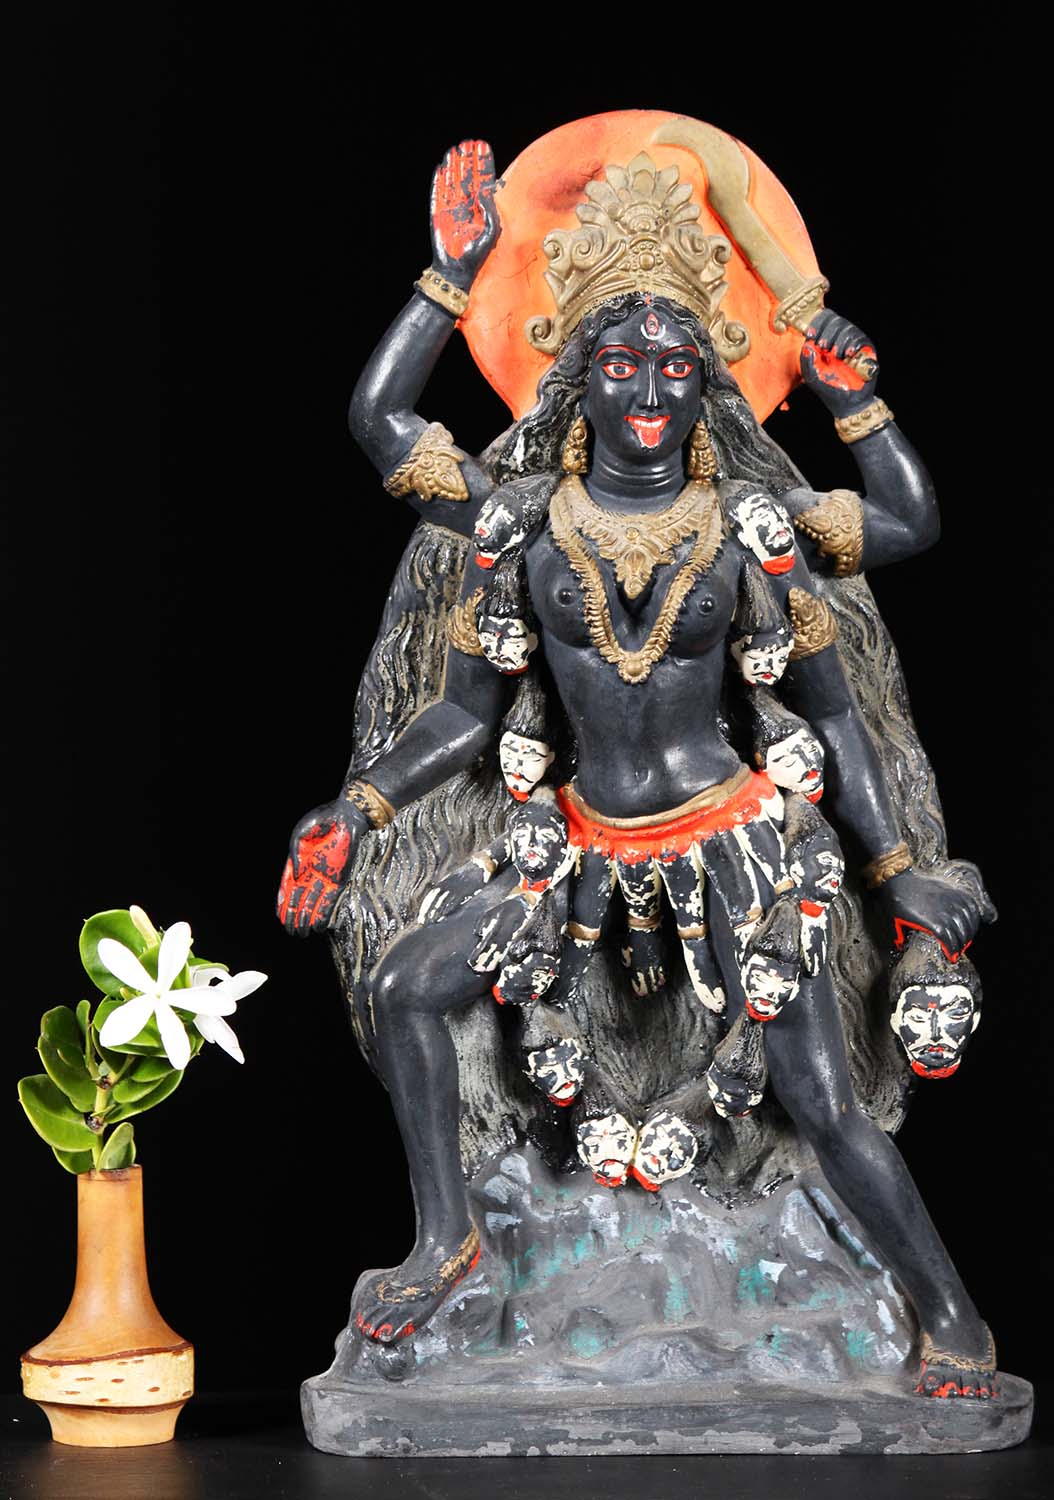 Sold Fiber Kali Statue Wearing Garland Of Skulls 15